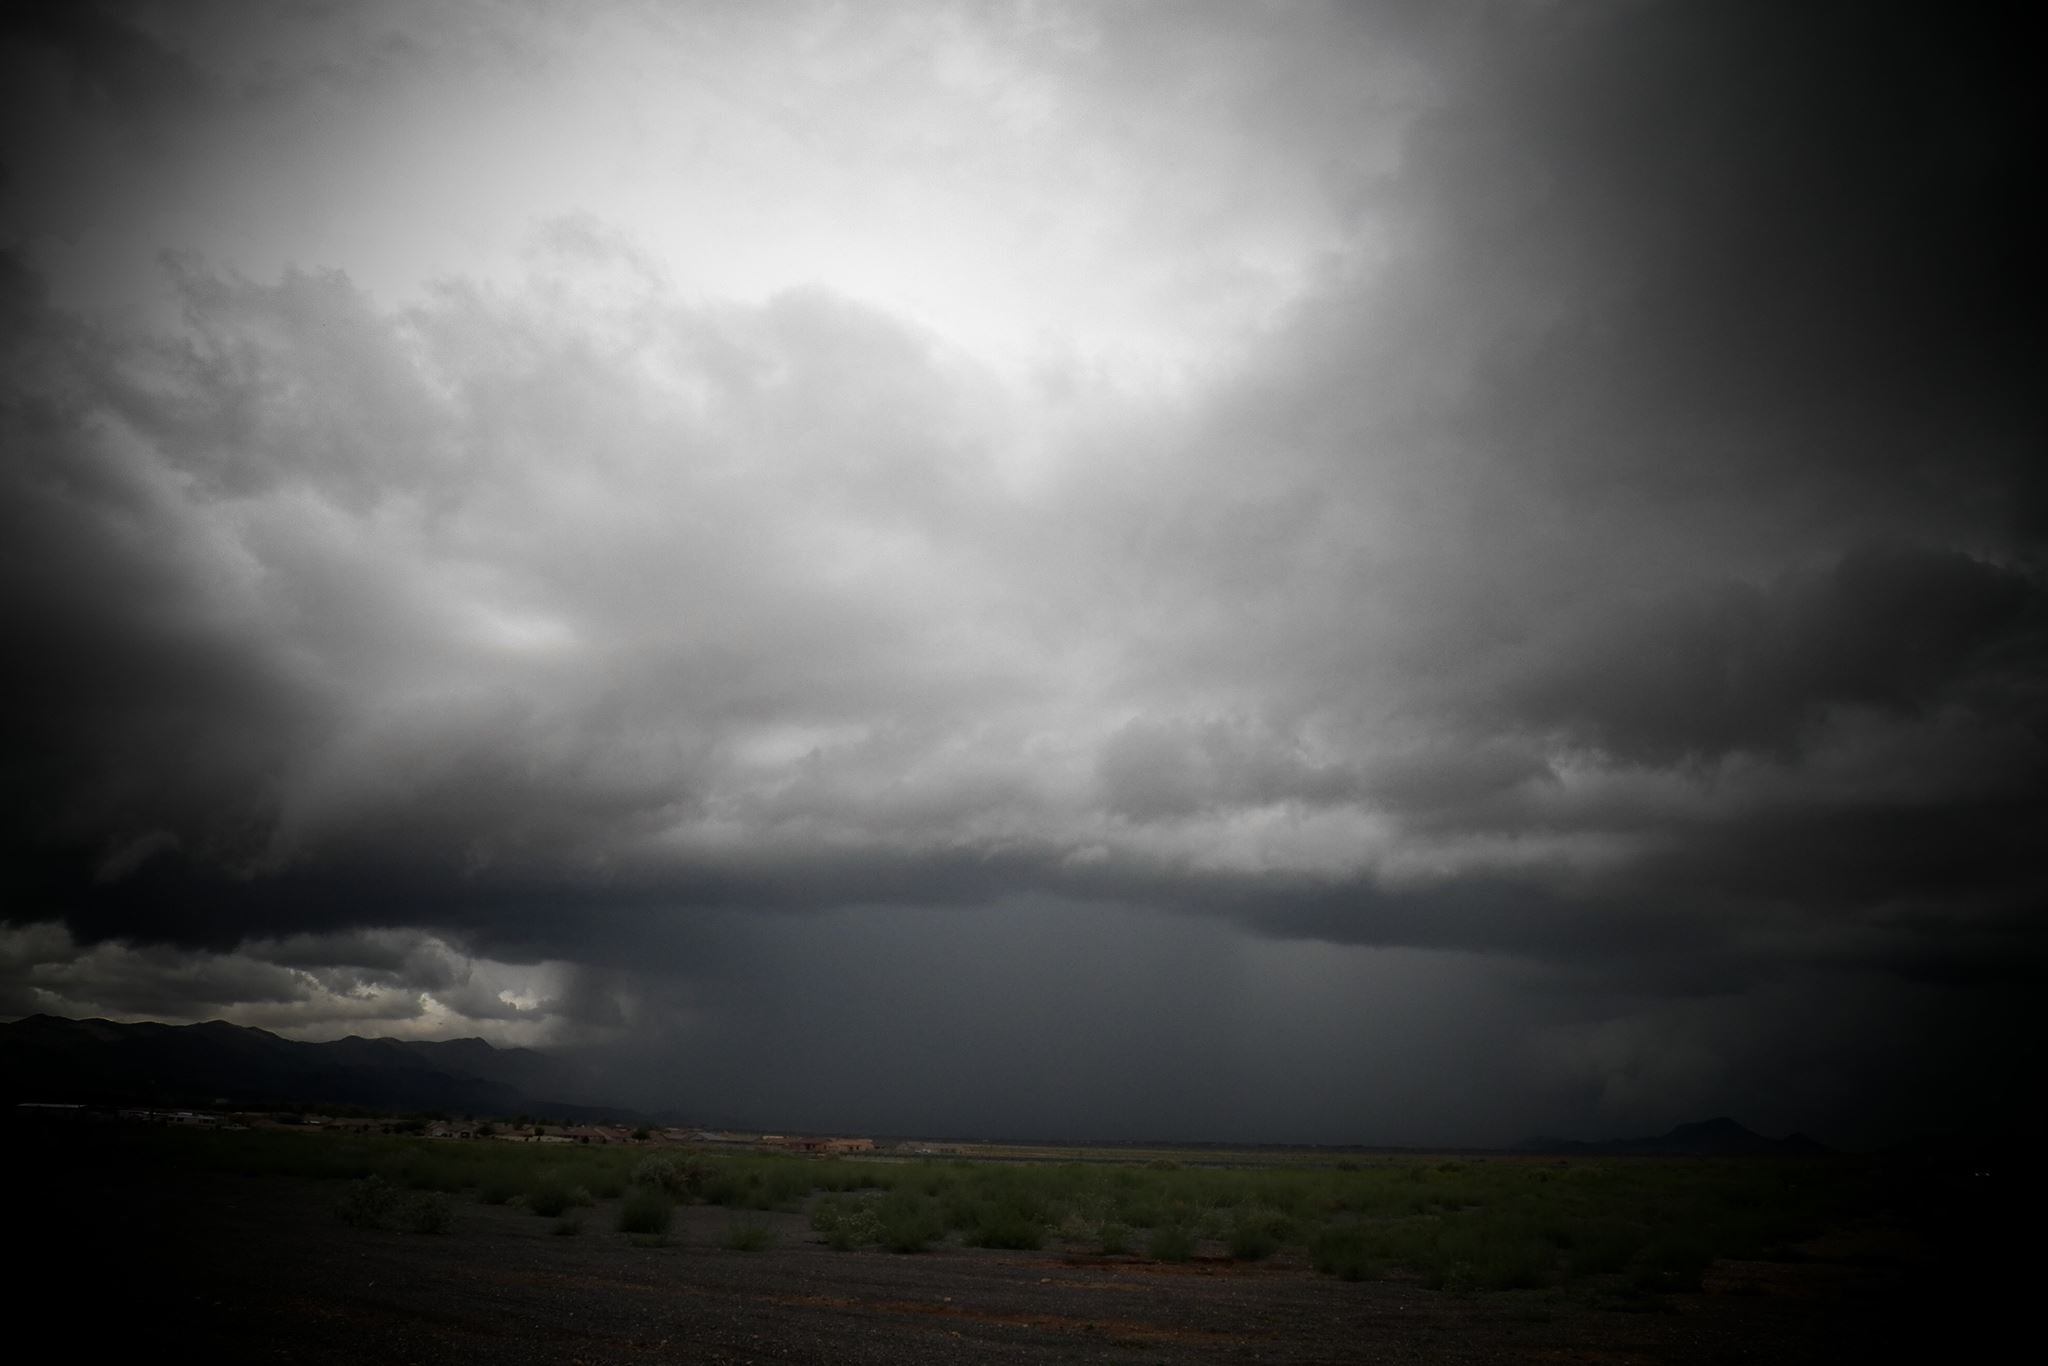 Near Kingman on Aug. 30 (Photo credit: Melinda Dougherty)